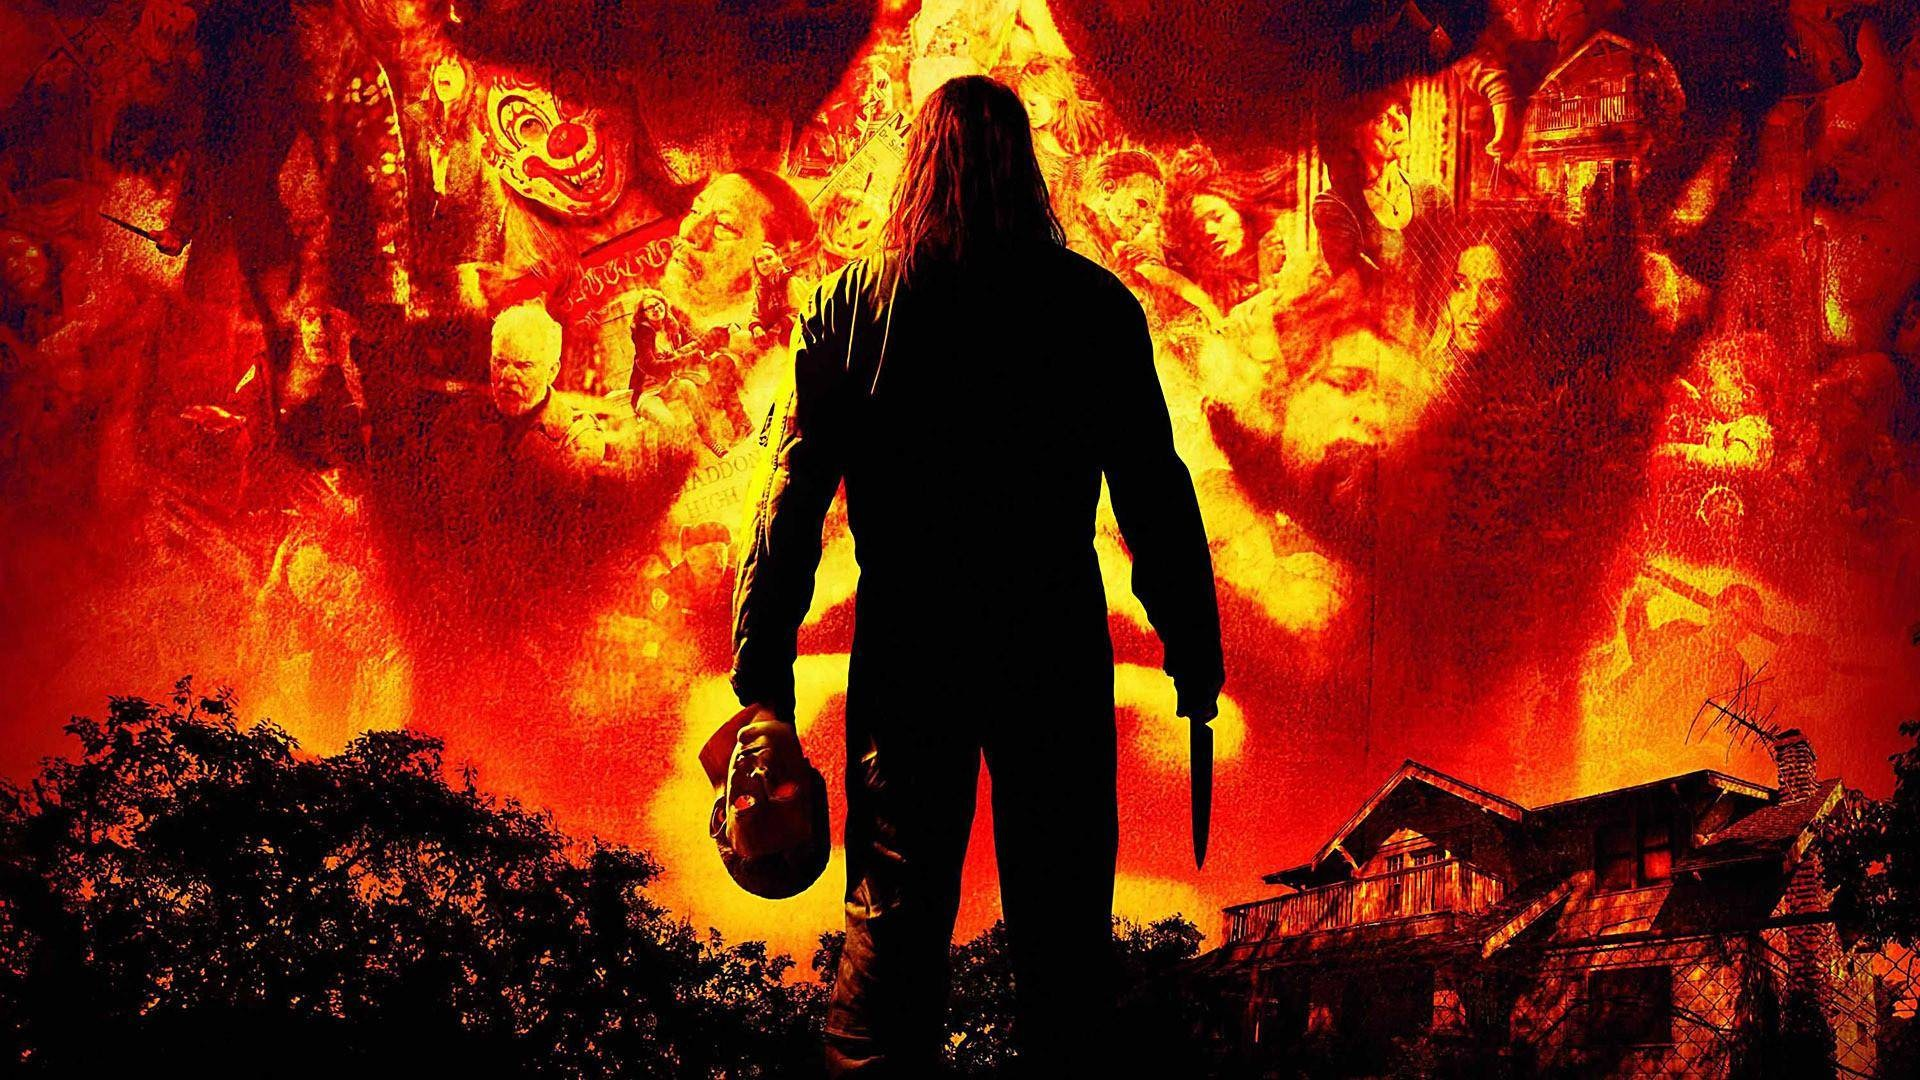 Horror Movie Screensavers And Wallpapers 42 Images